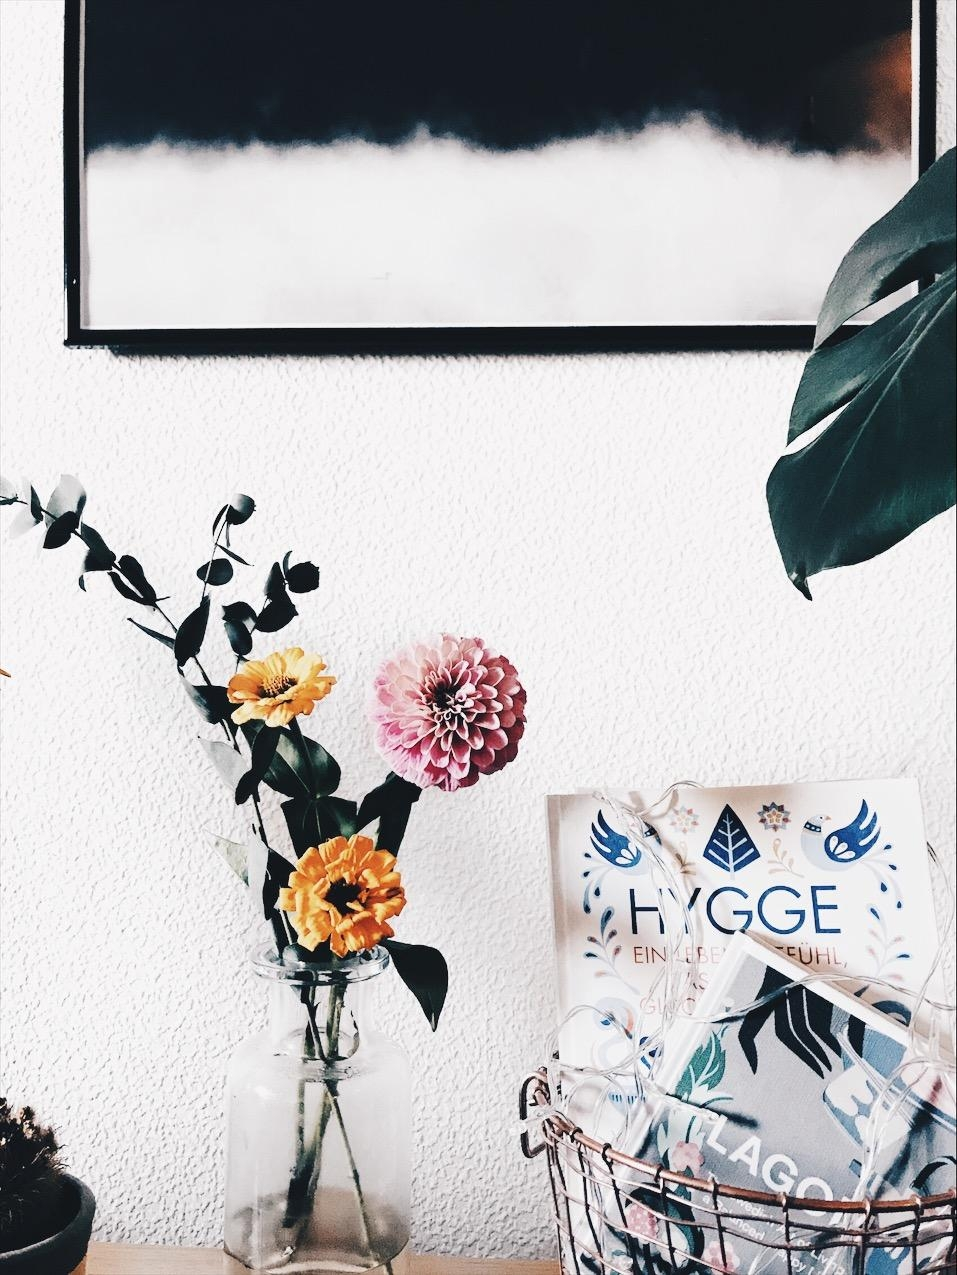 #hygge #home #interior #deko #details #couchliebt #flowers